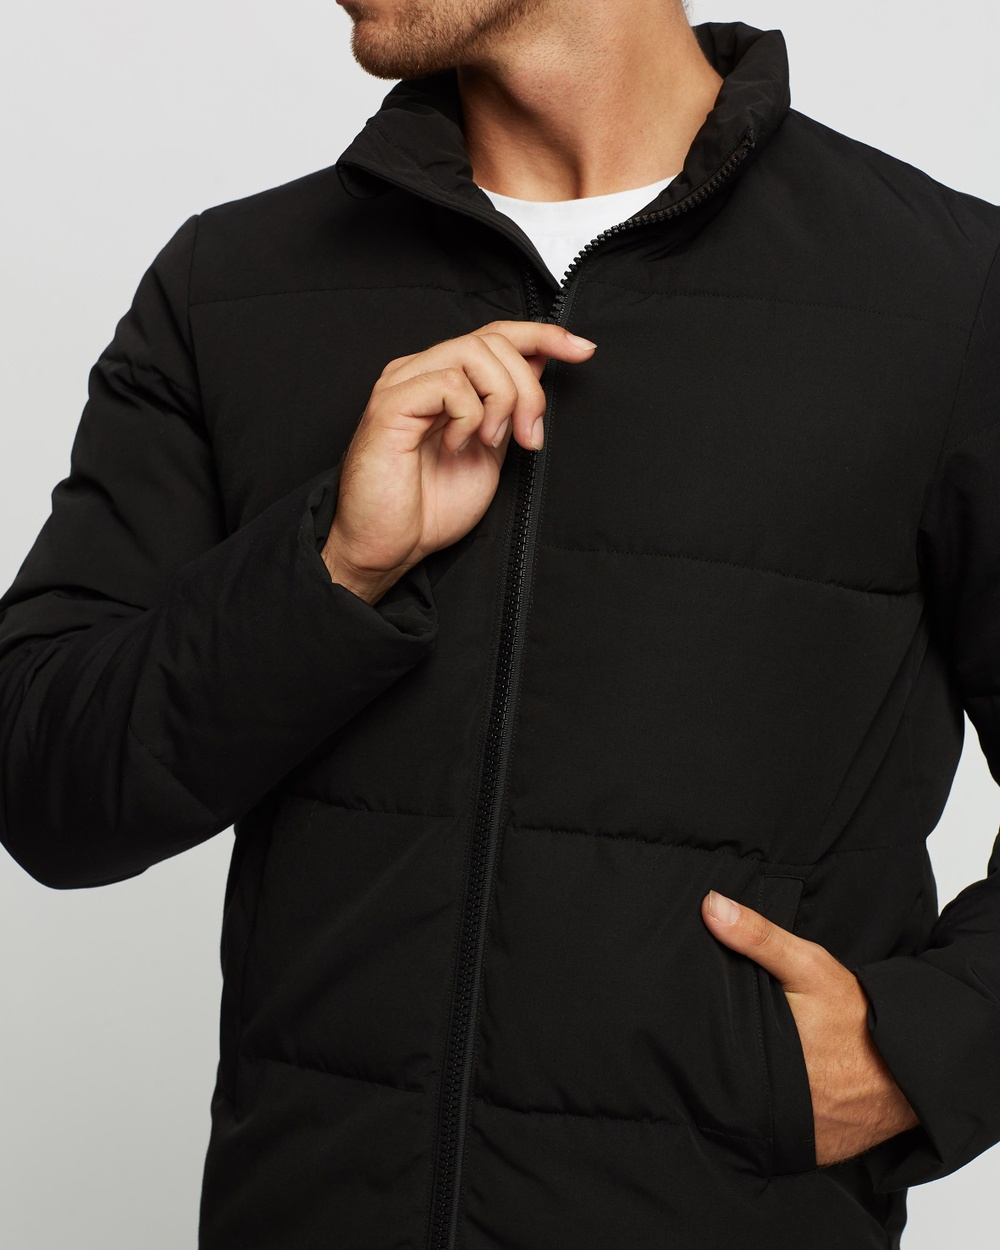 AERE Recycled Quilted Puffer Jacket Coats & Jackets Black